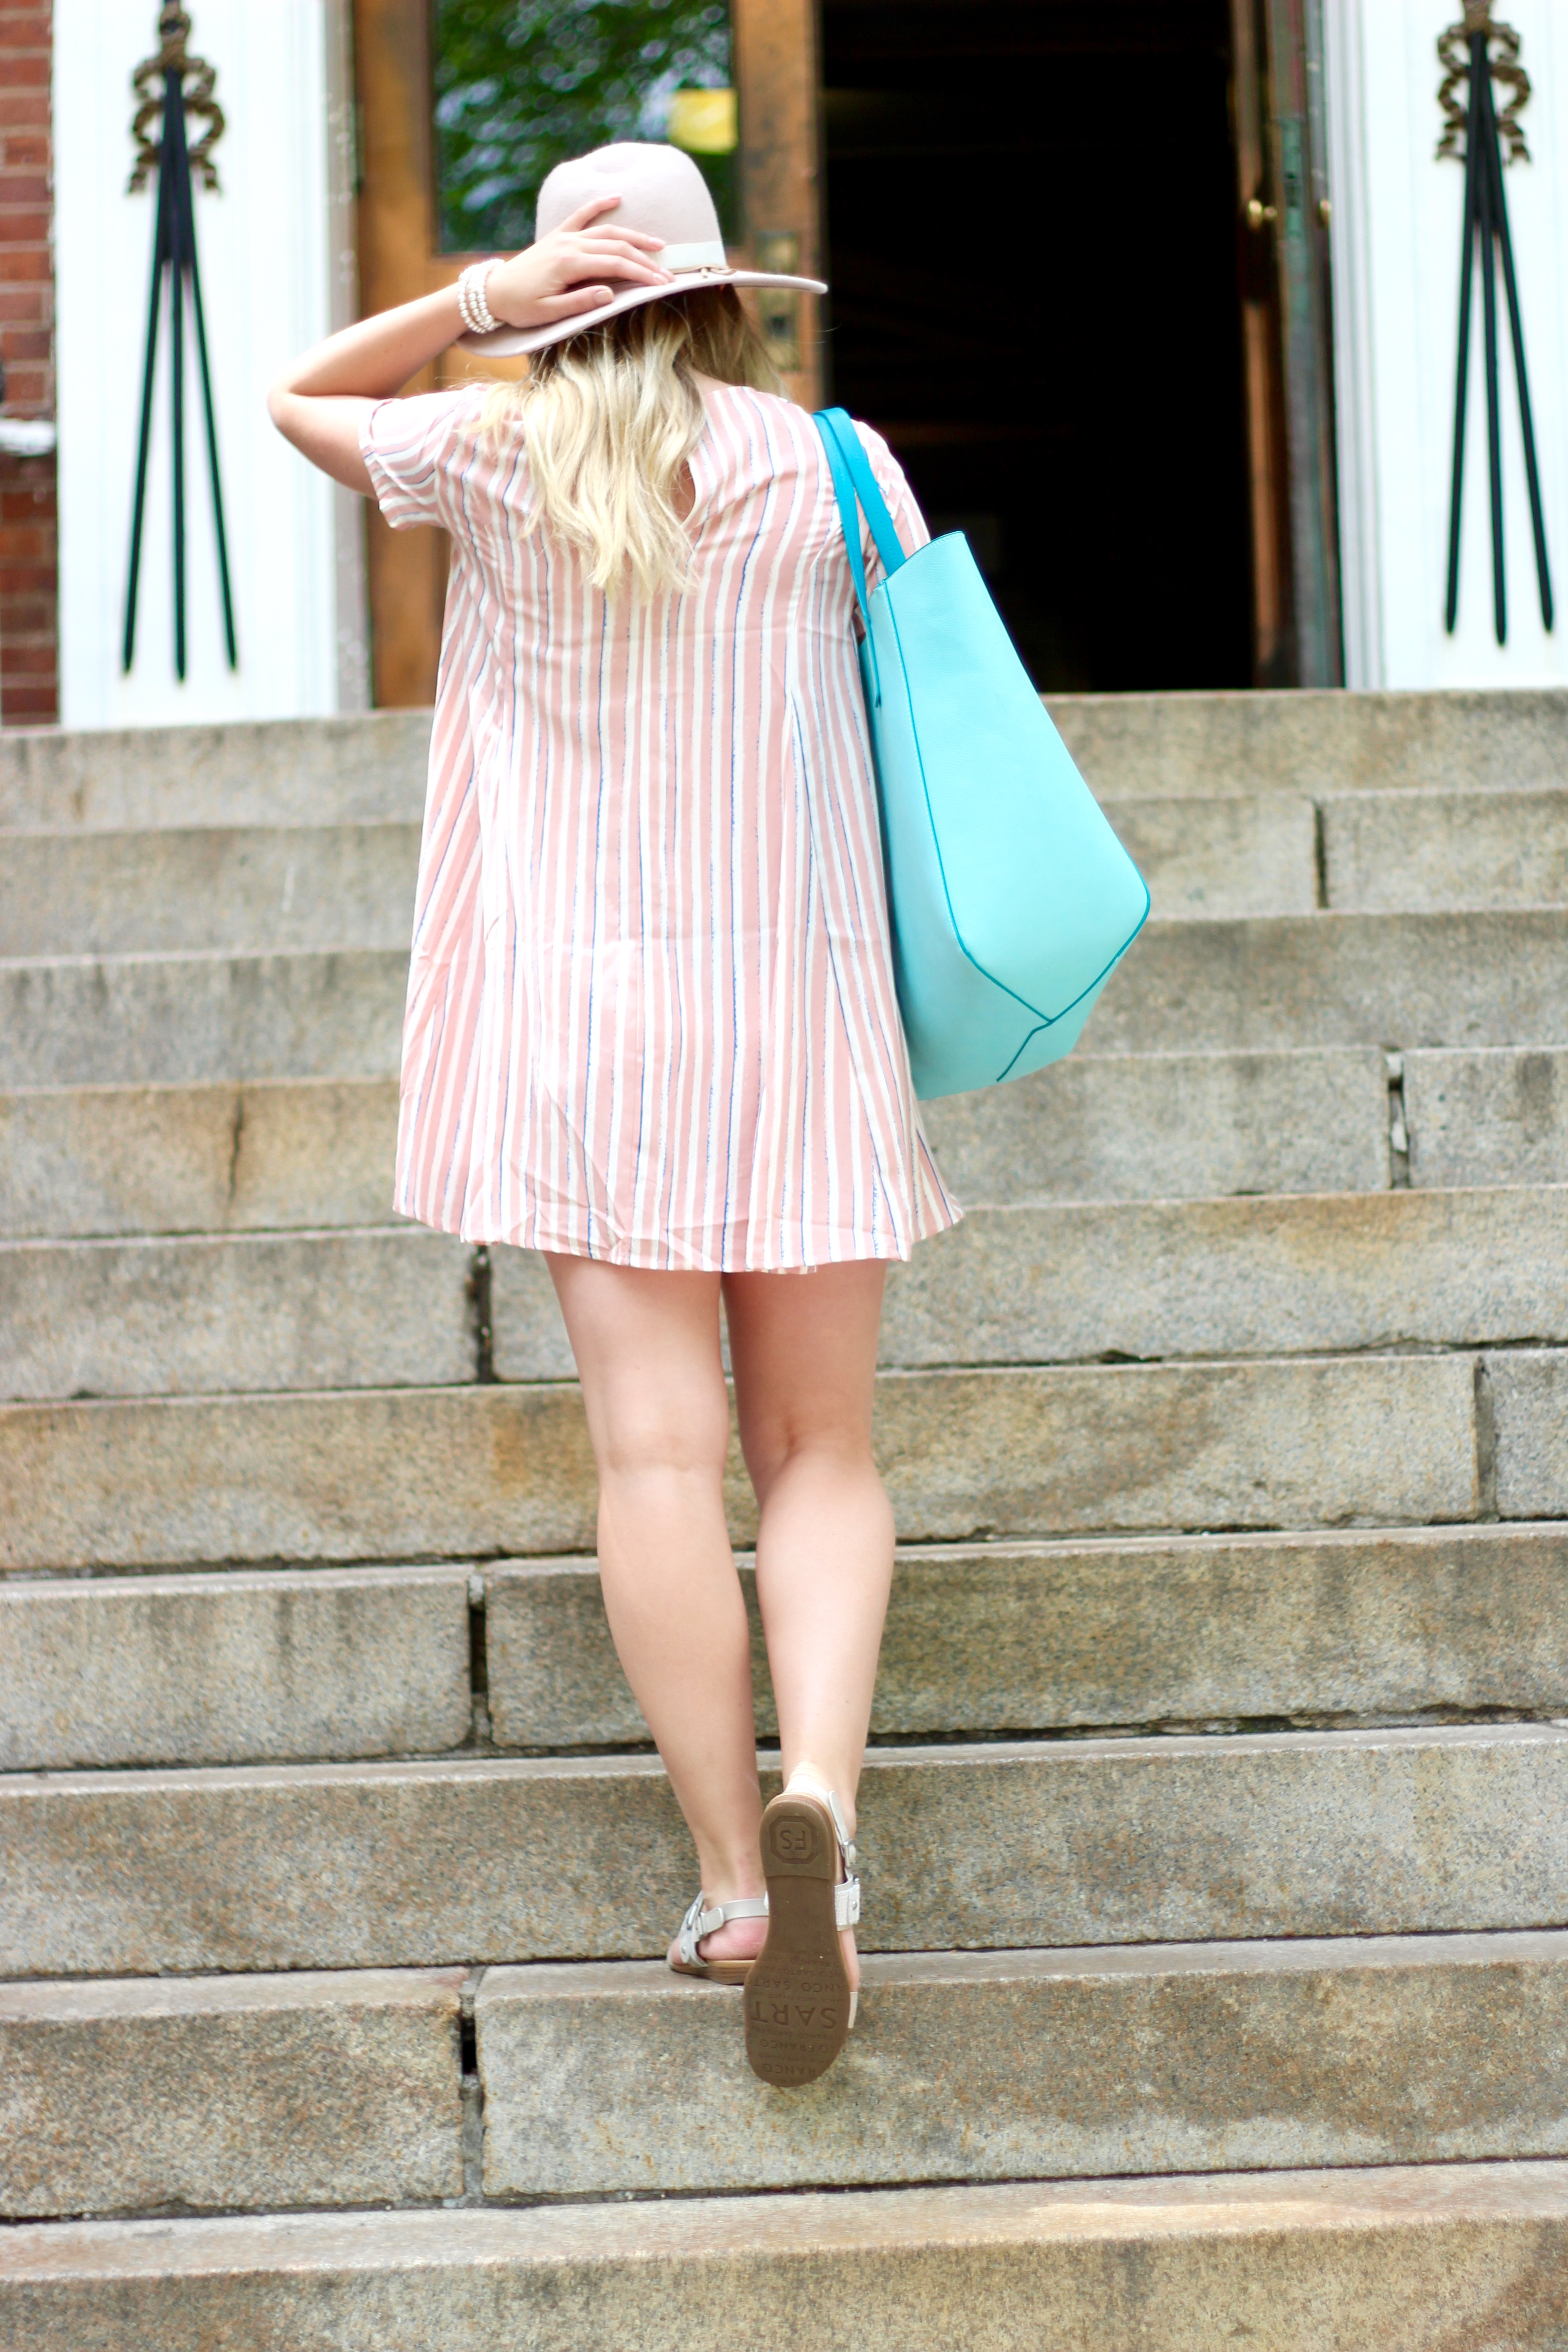 new york city outfit | Audrey Madison Stowe Blog